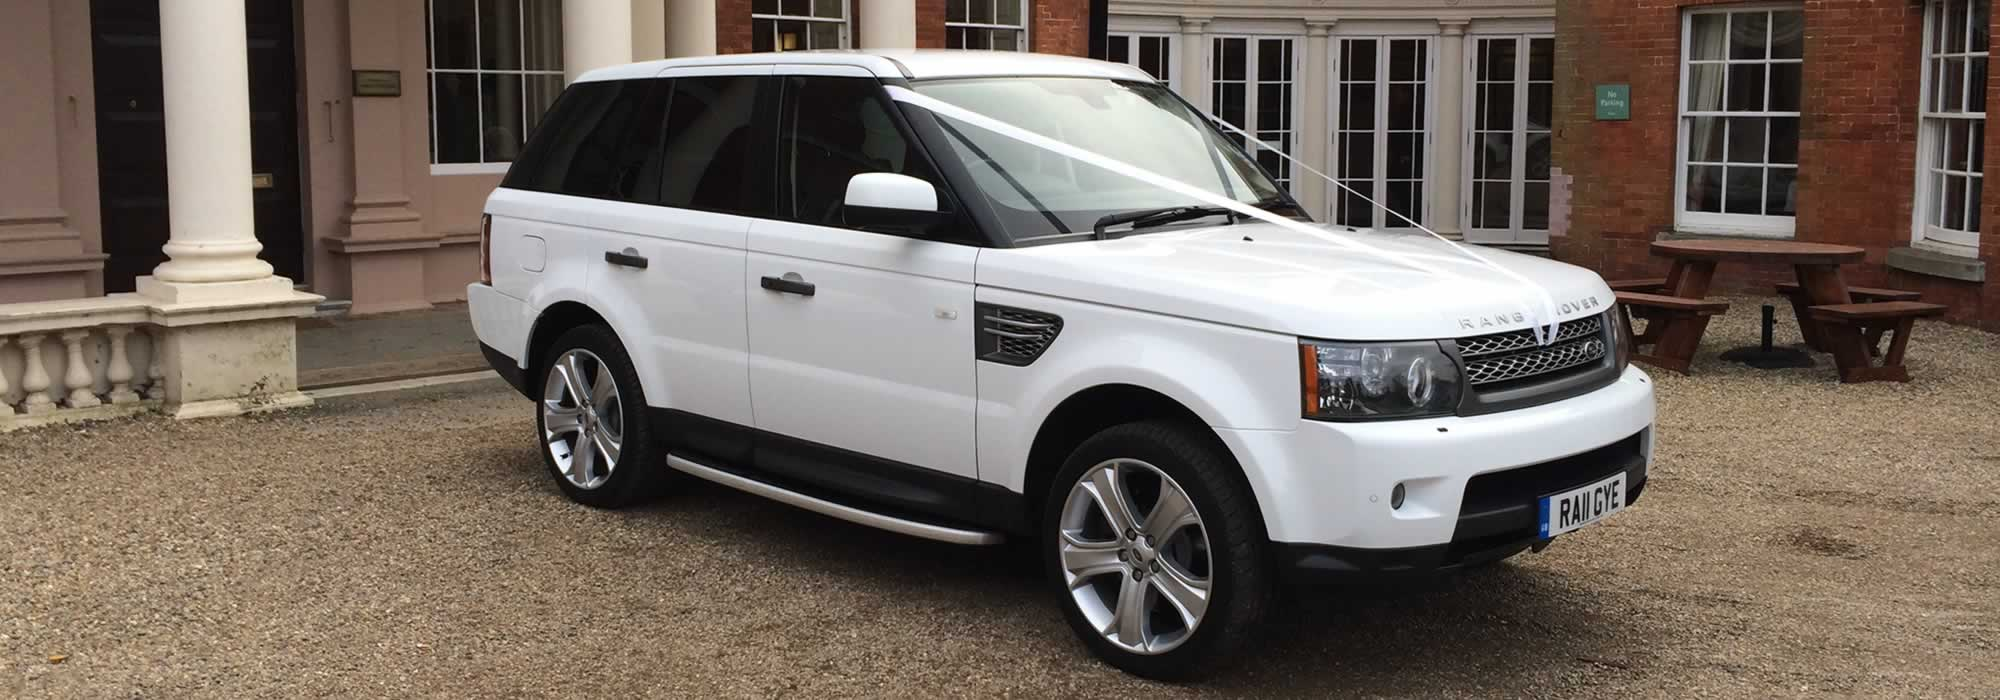 Range Rover Car Hire East London